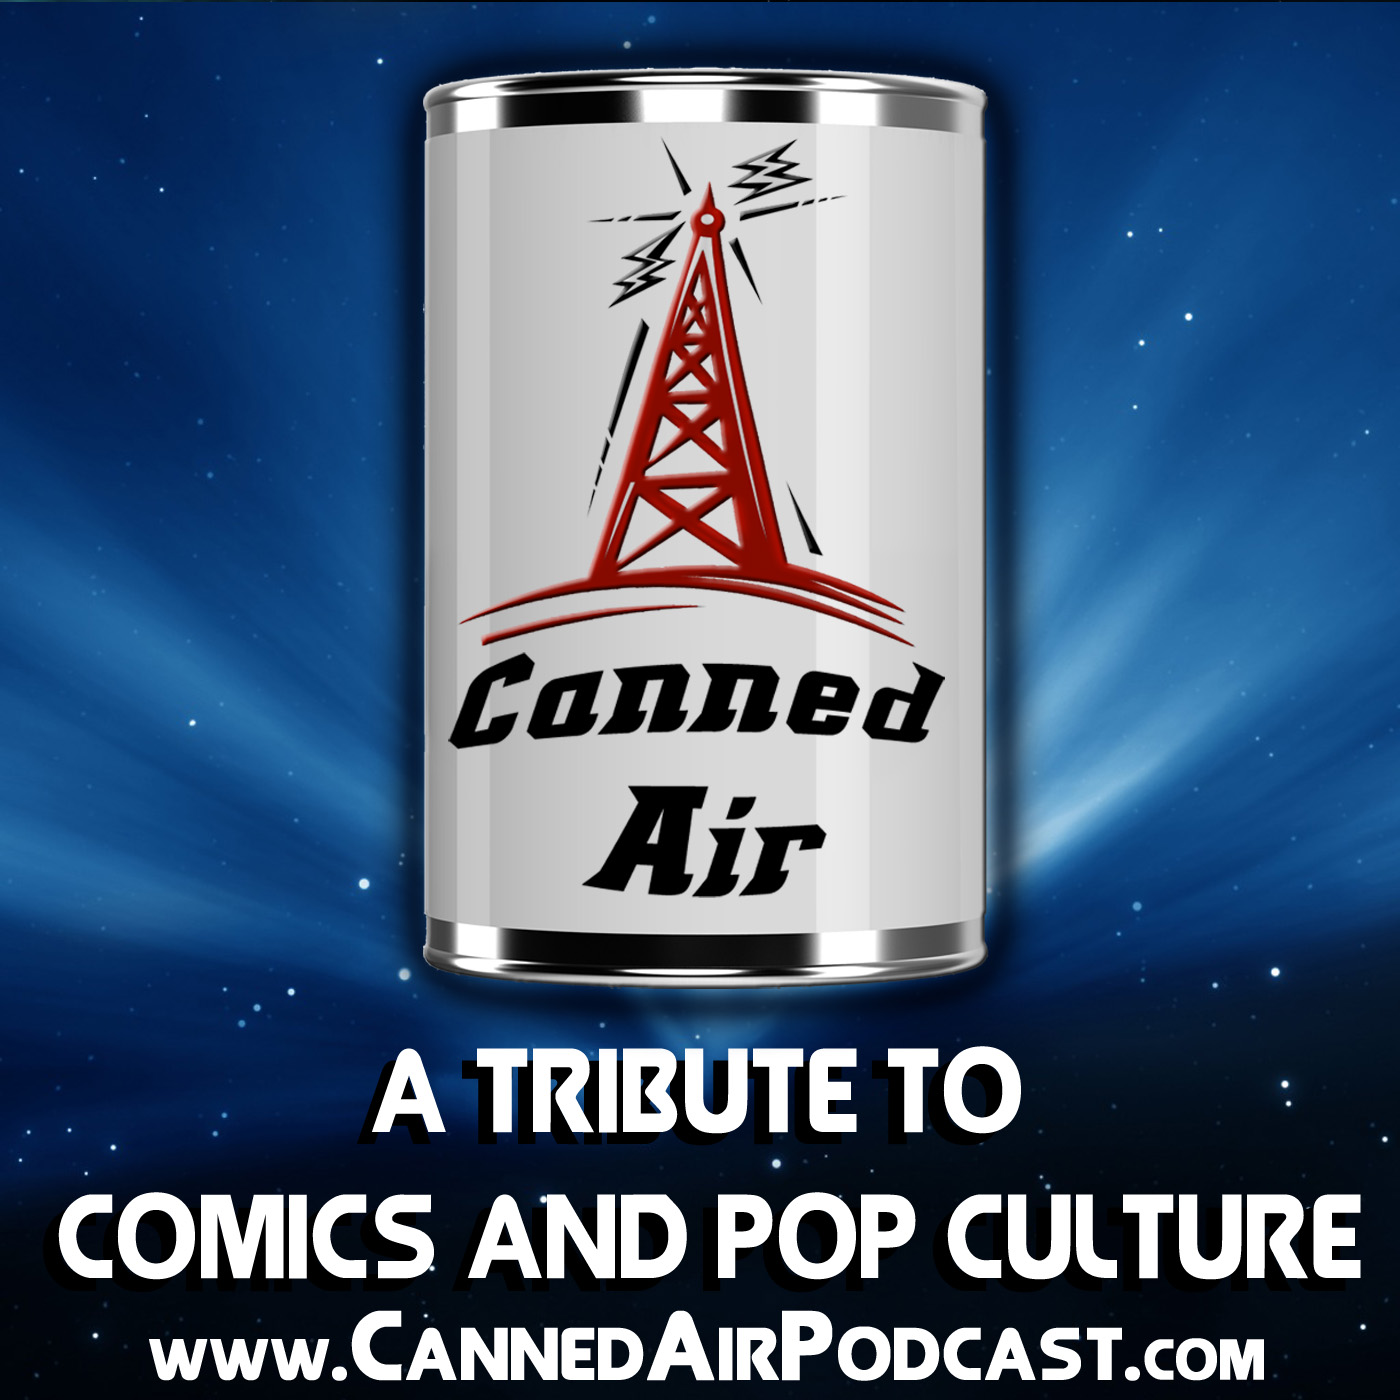 Canned Air: A Tribute to Comics and Pop Culture logo